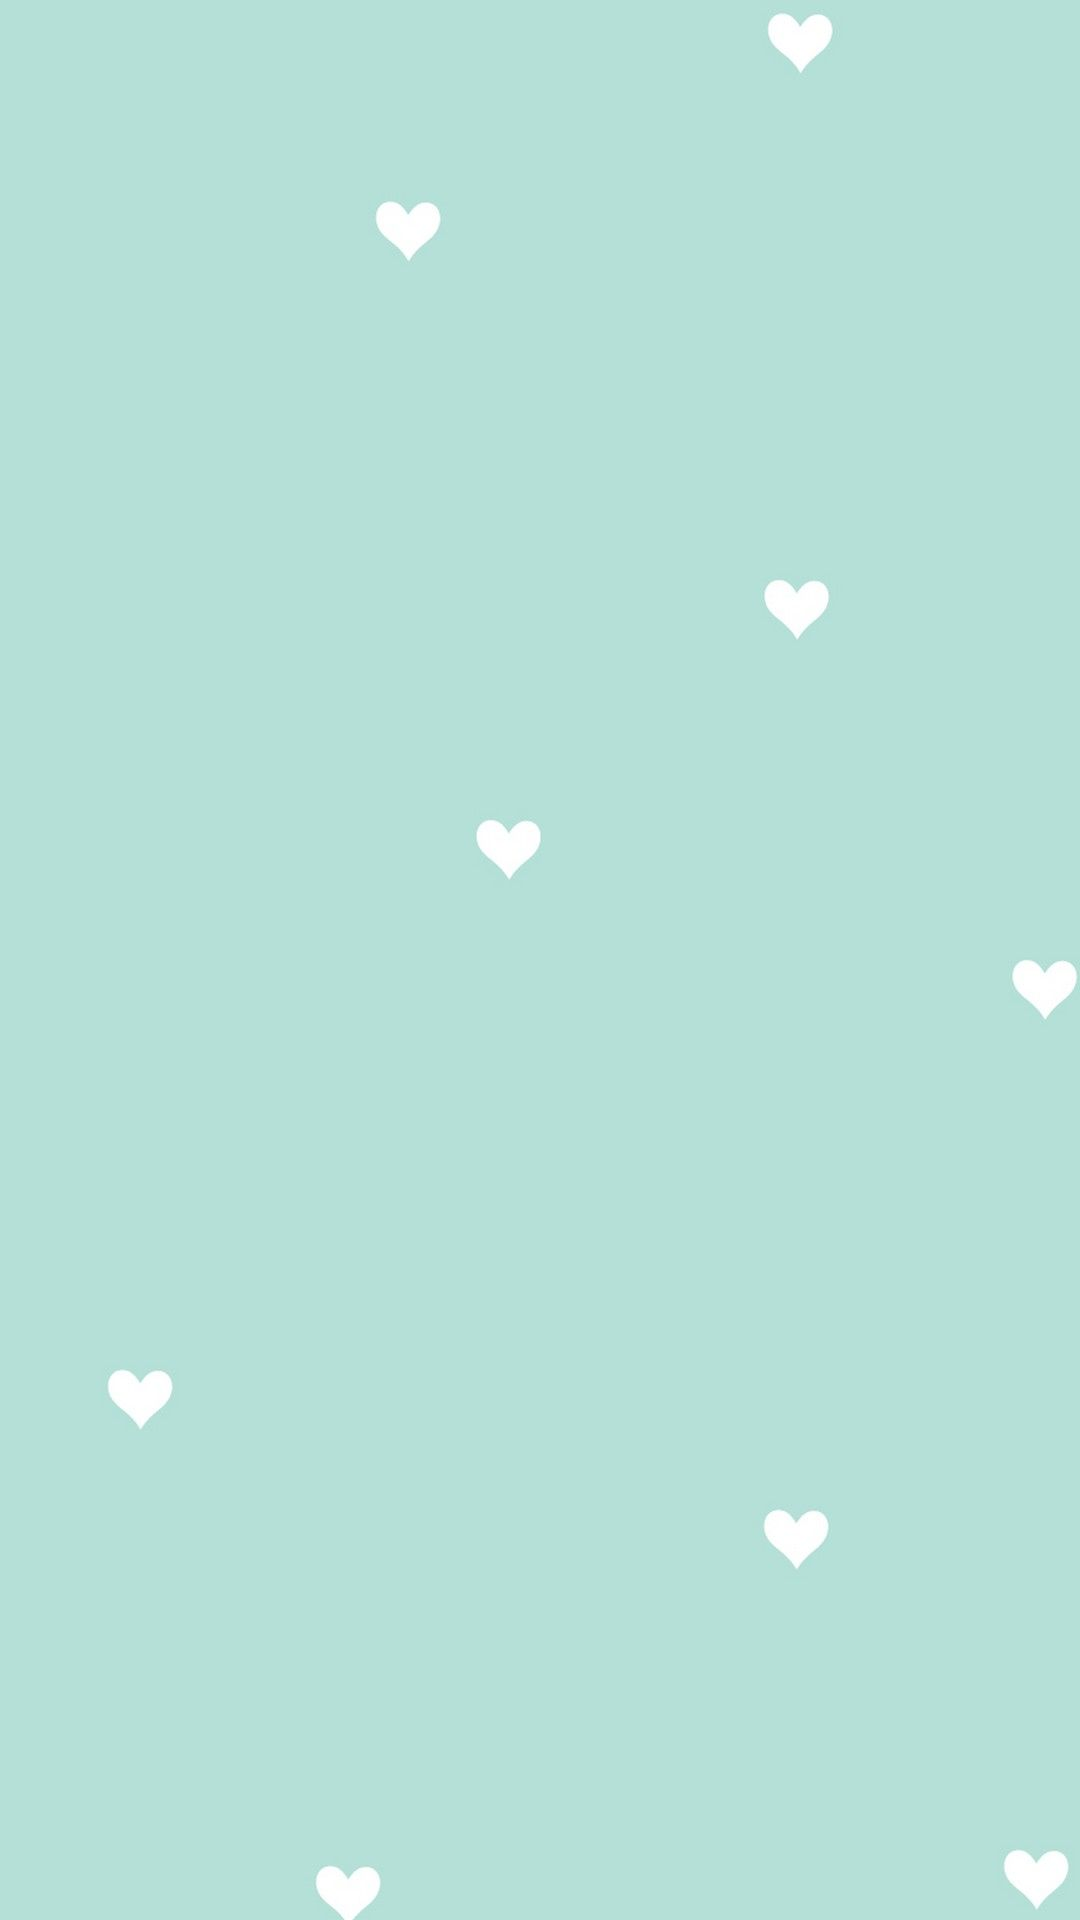 Mint Green Hd Wallpapers For Android Mint Green Wallpaper Iphone Mint Wallpaper Mint Green Wallpaper